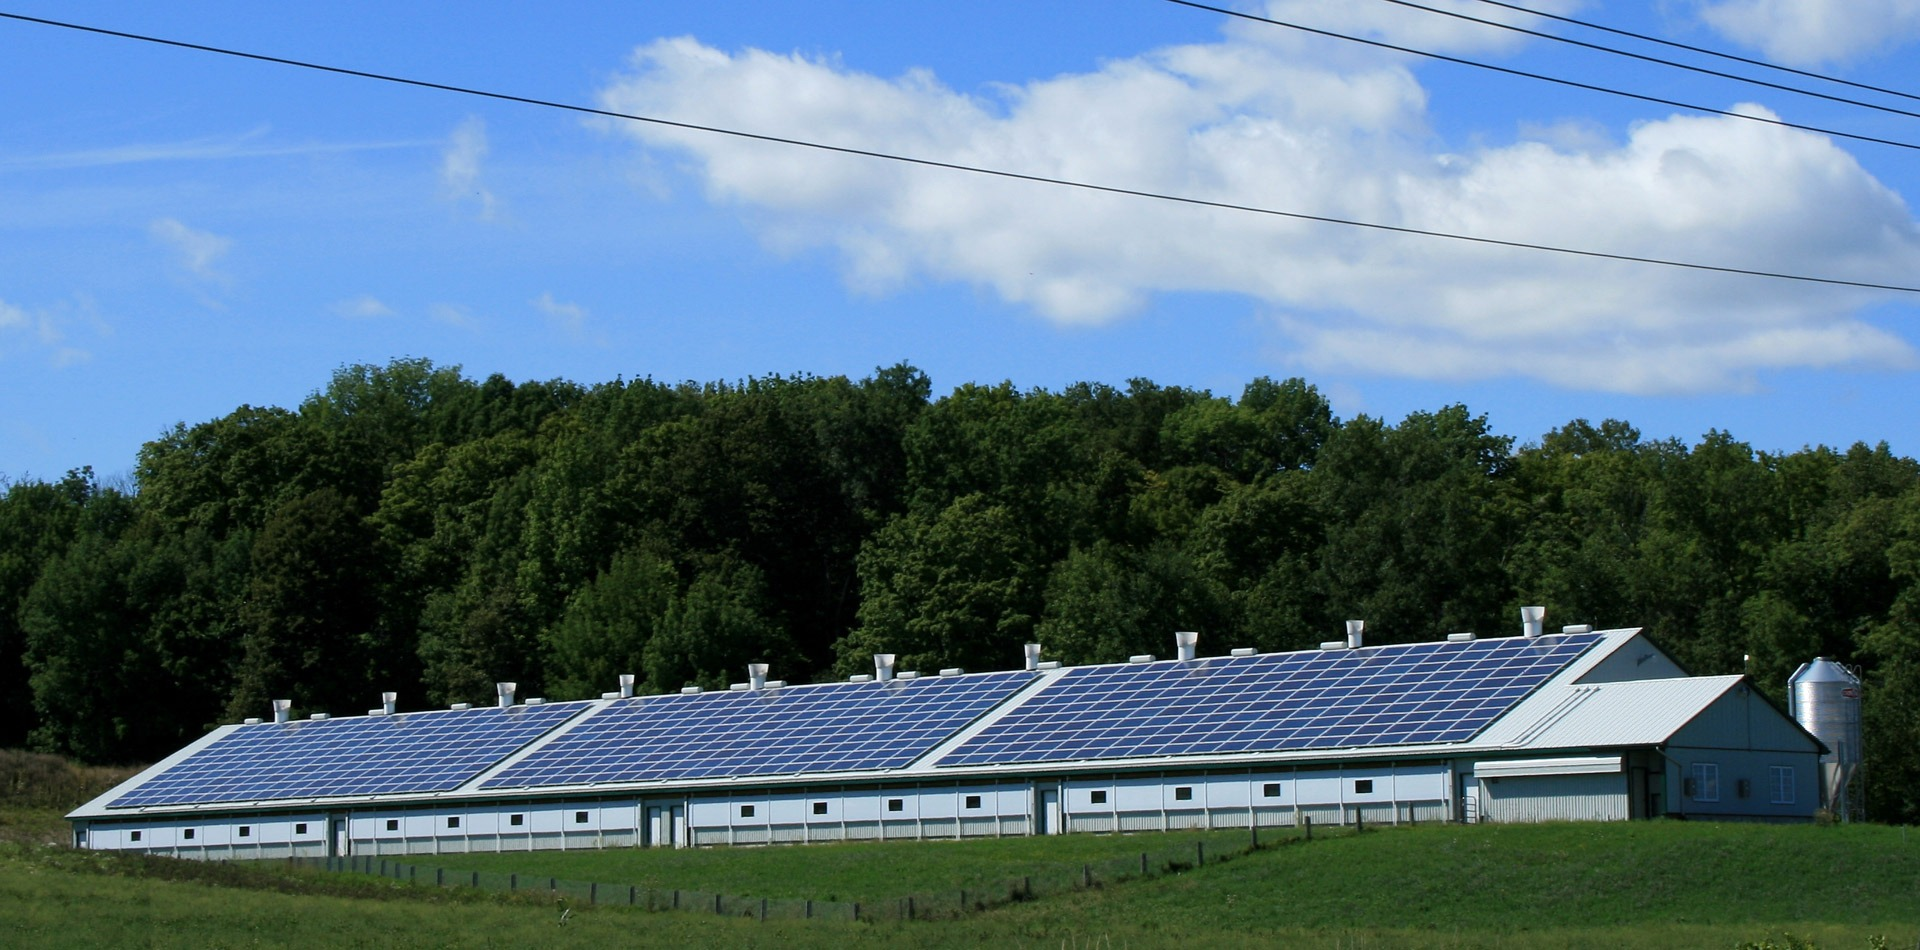 Endless possibilities of solar power investment – Irish Solar Energy